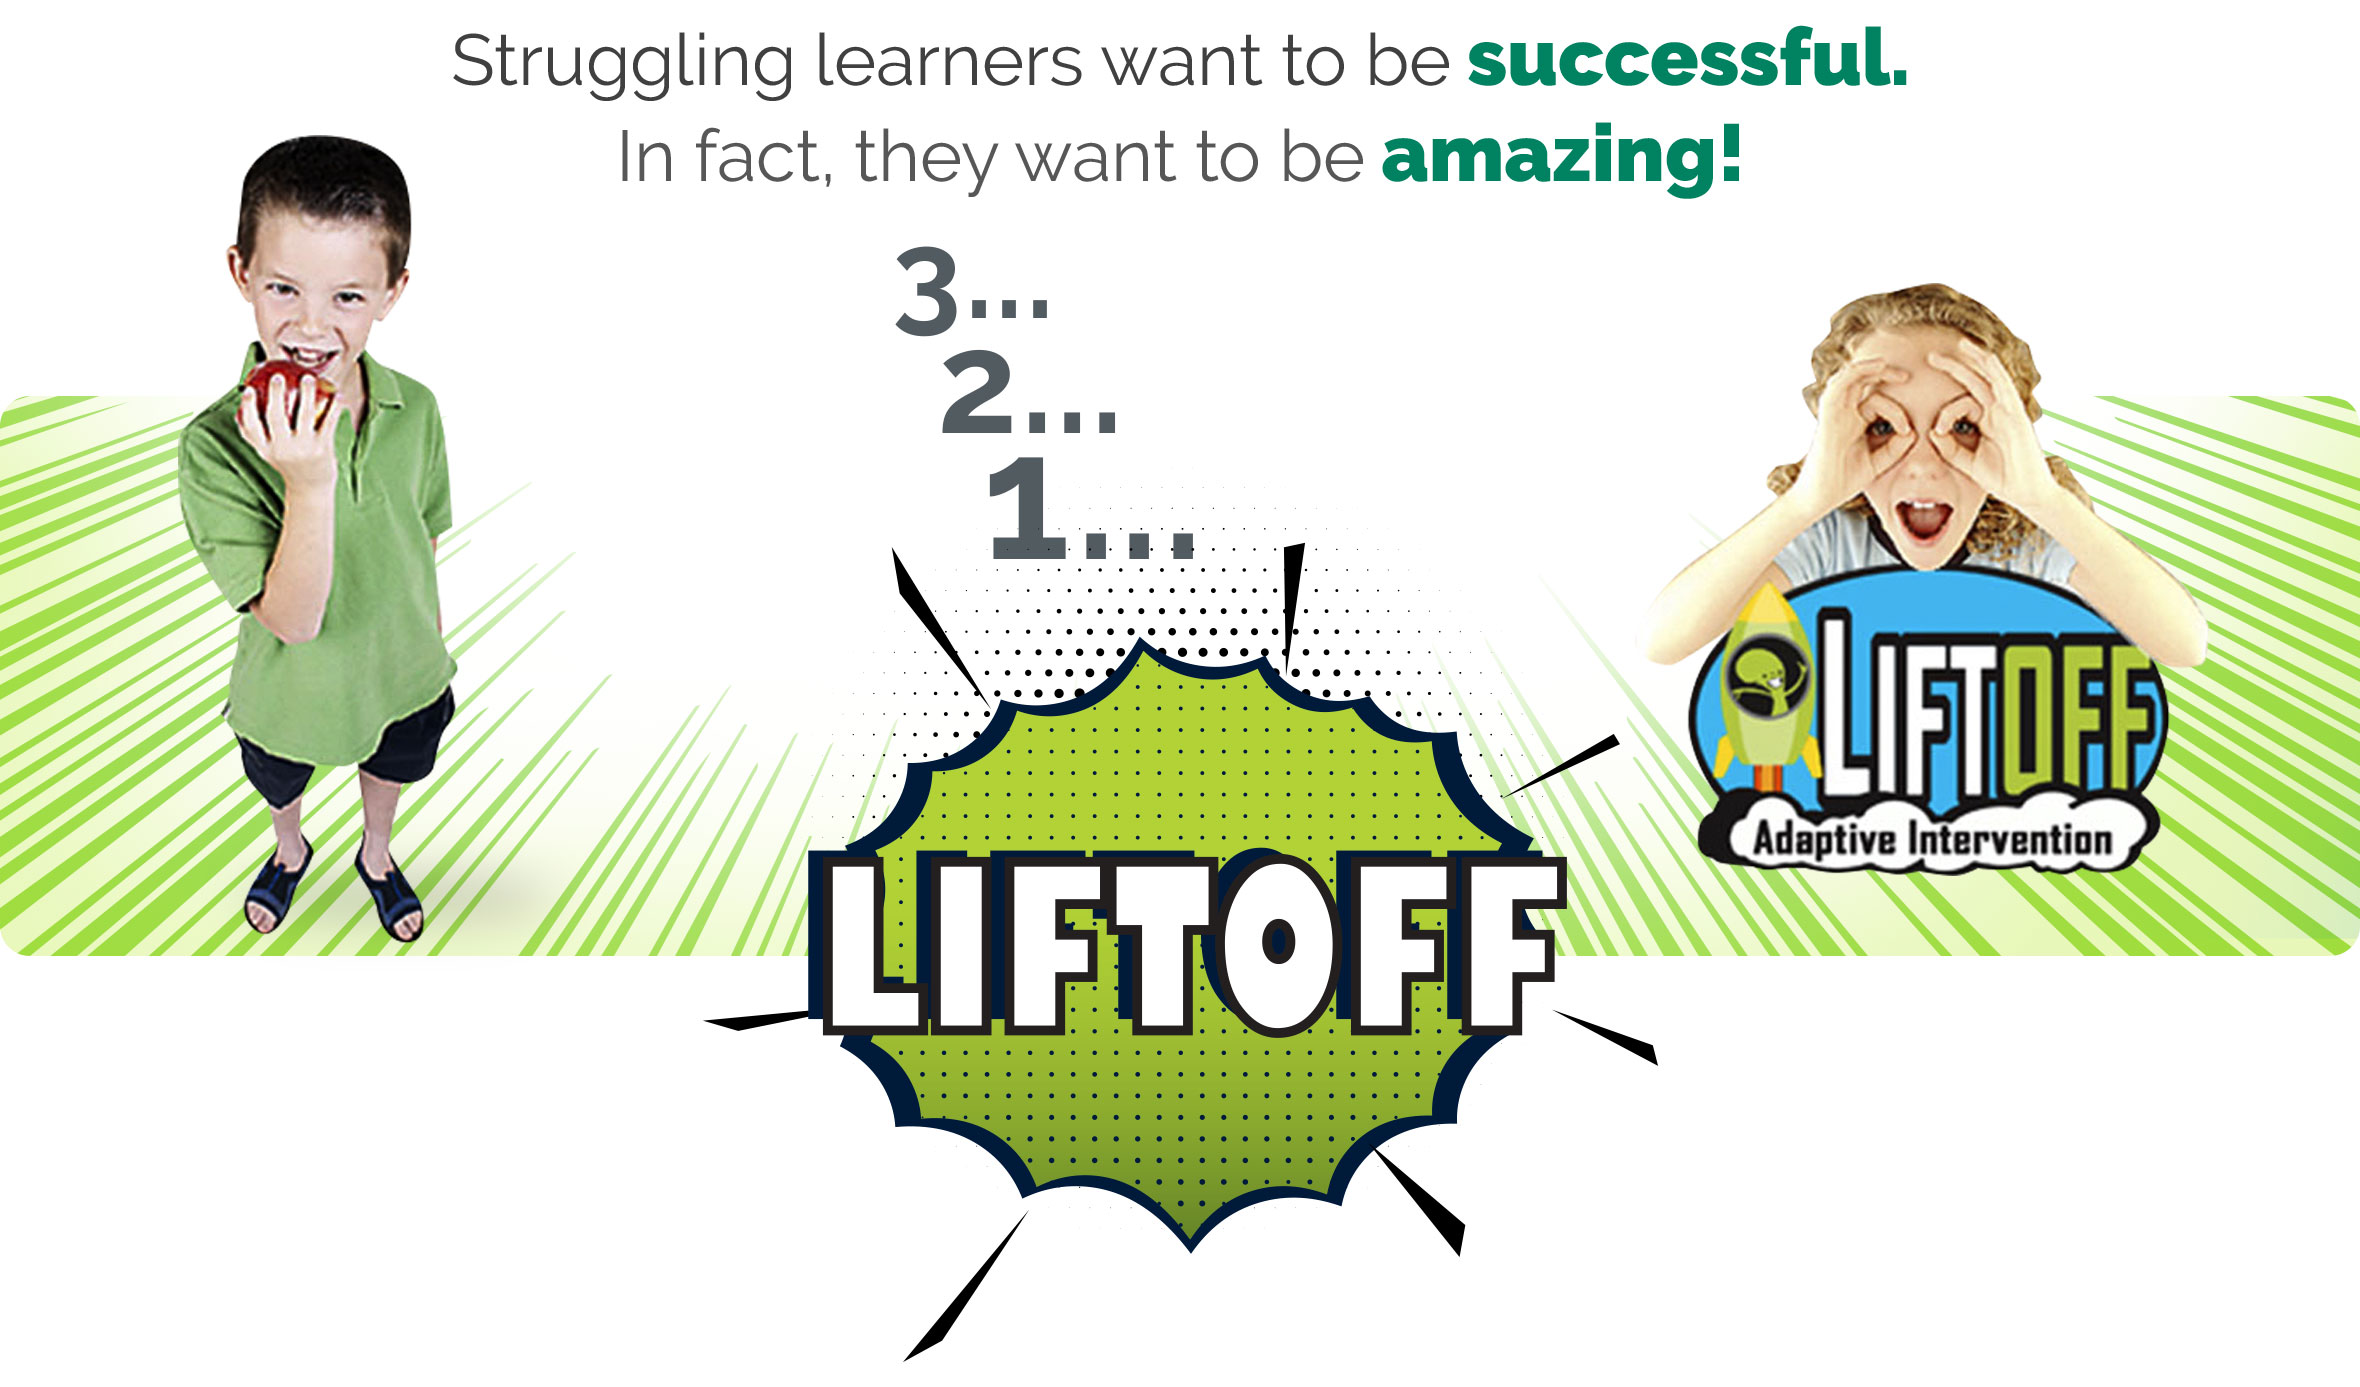 Liftoff Adaptive Intervention for At-Risk Students